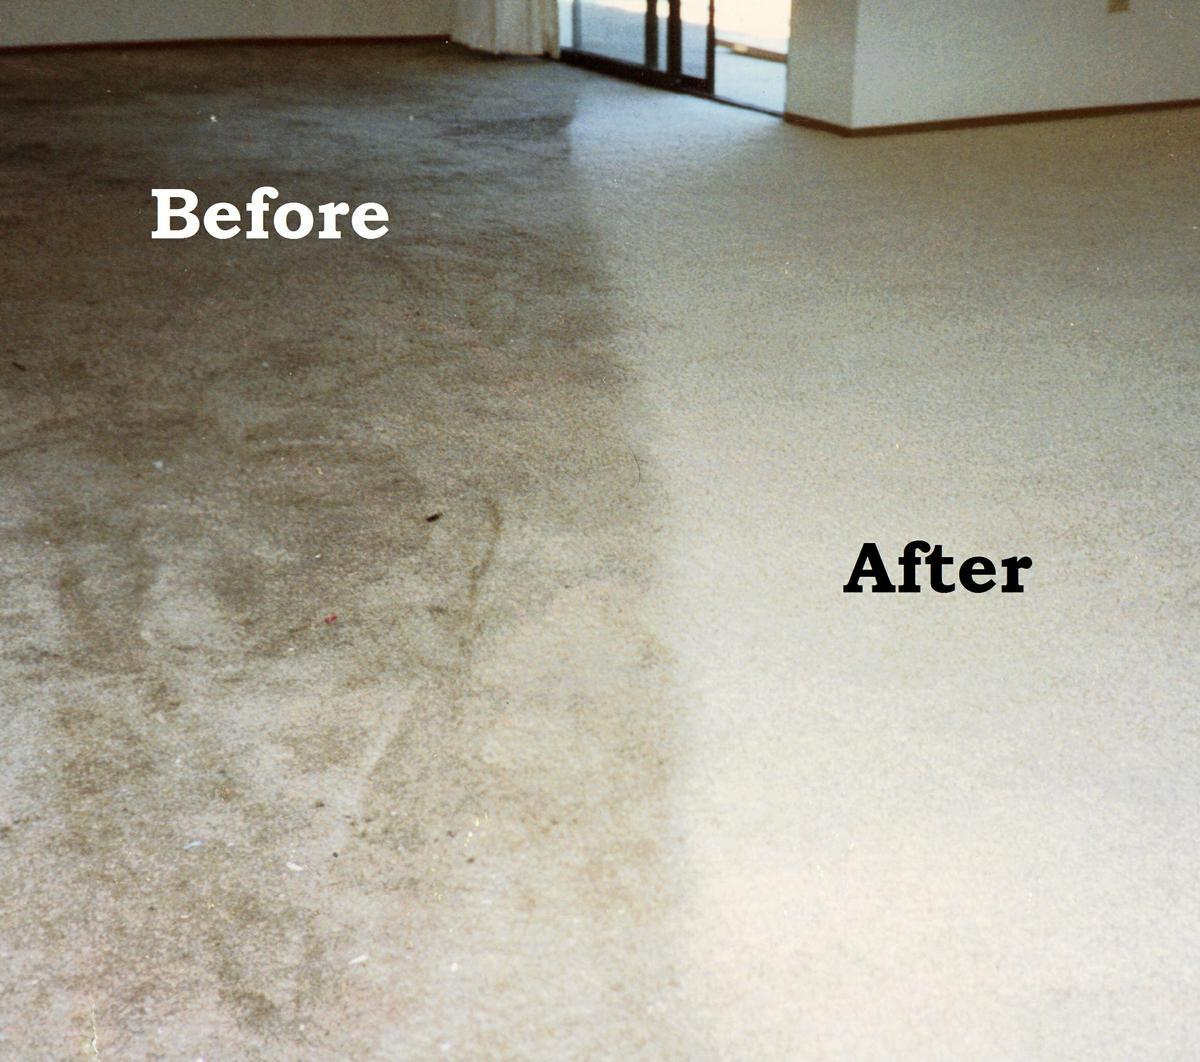 Atlanta Carpet and Air Duct Cleaning